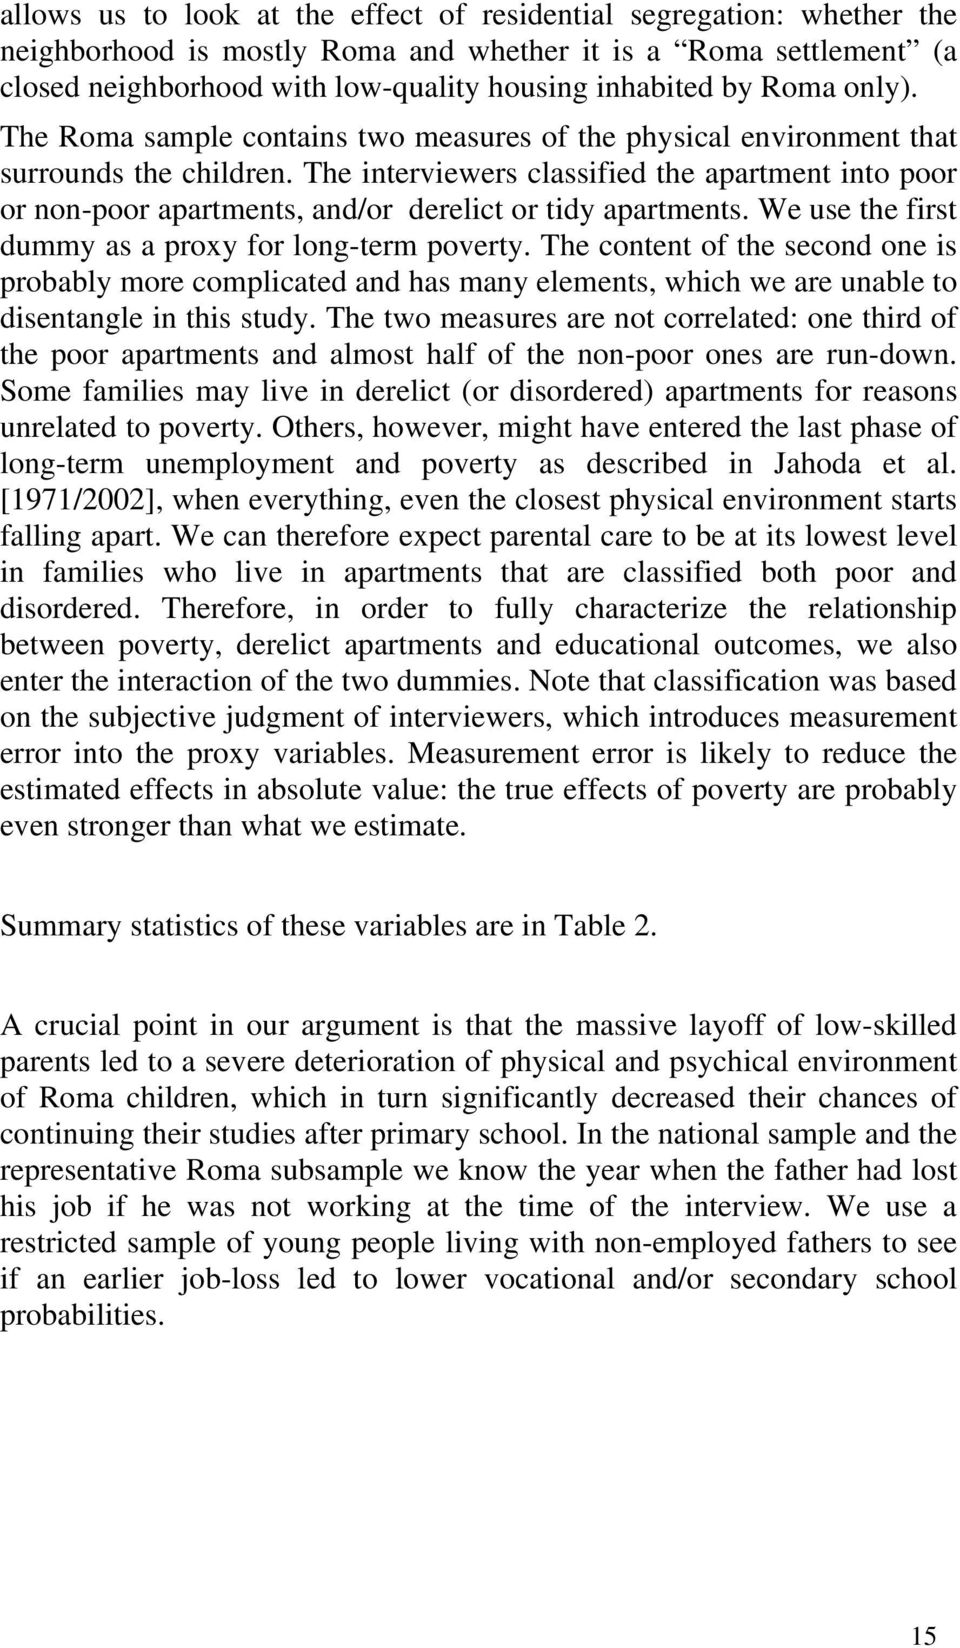 The interviewers classified the apartment into poor or non-poor apartments, and/or derelict or tidy apartments. We use the first dummy as a proxy for long-term poverty.